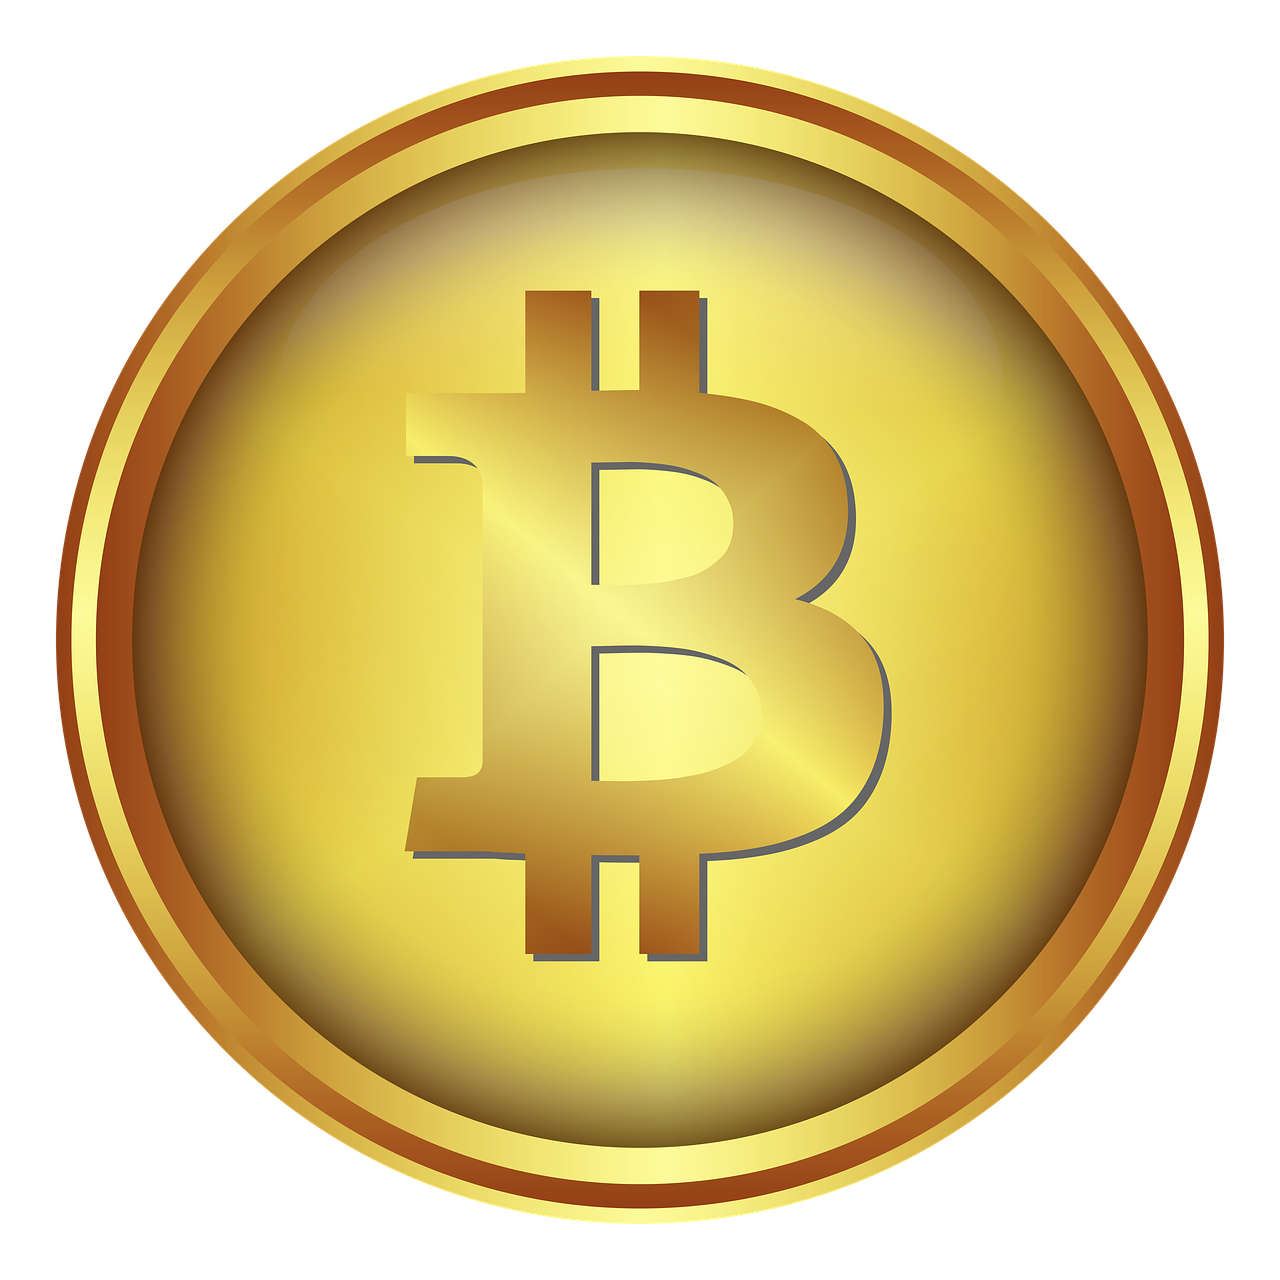 bitcoin currency coin free photo